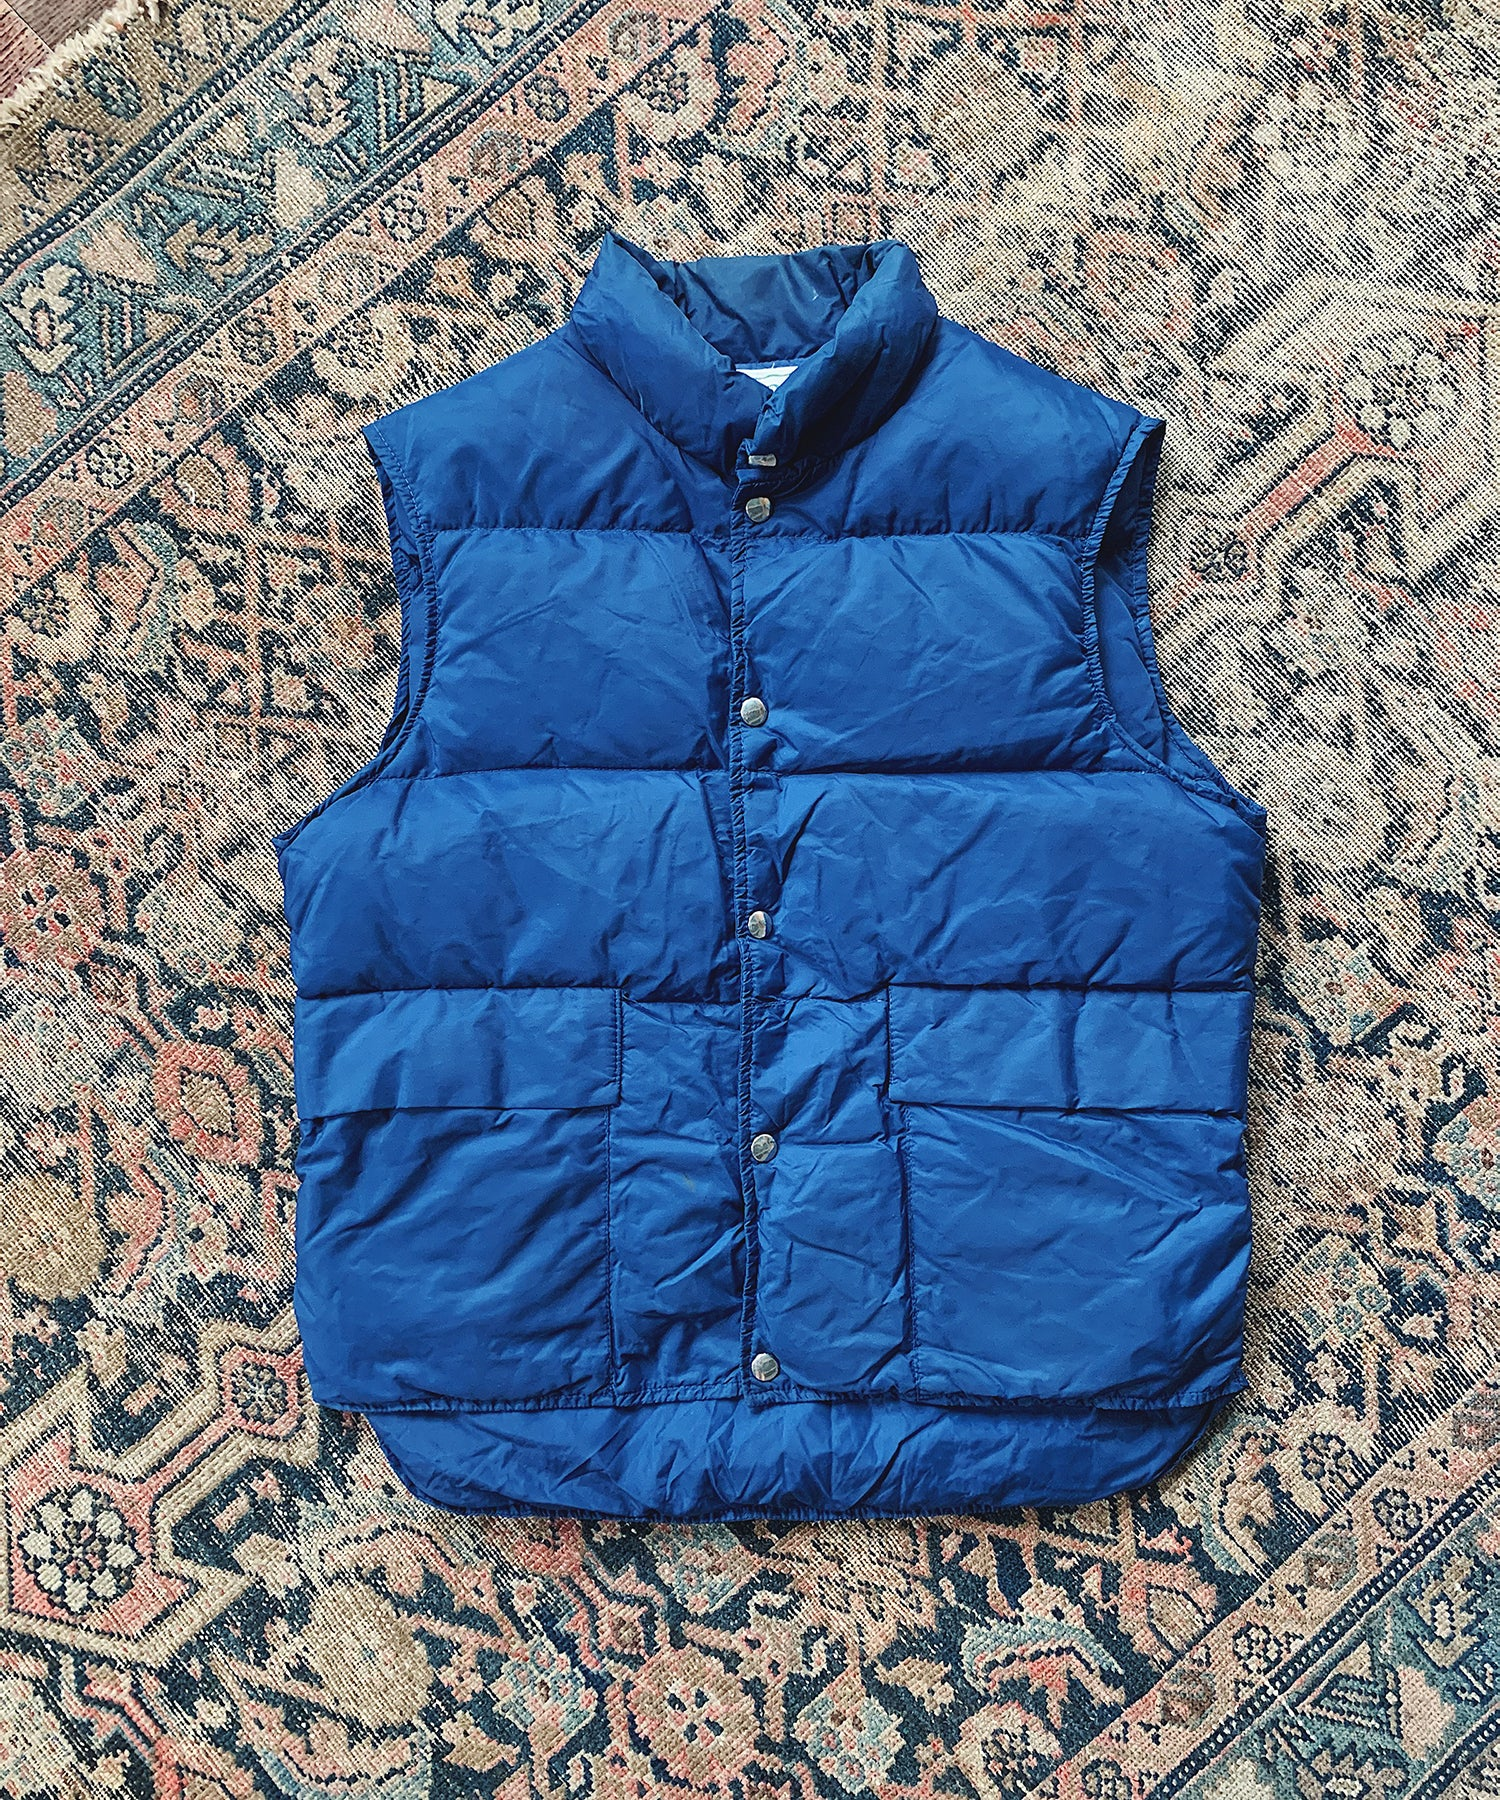 Item #11 -  Todd Snyder x Wooden Sleepers 1970's Down Vest in Navy - SOLD OUT